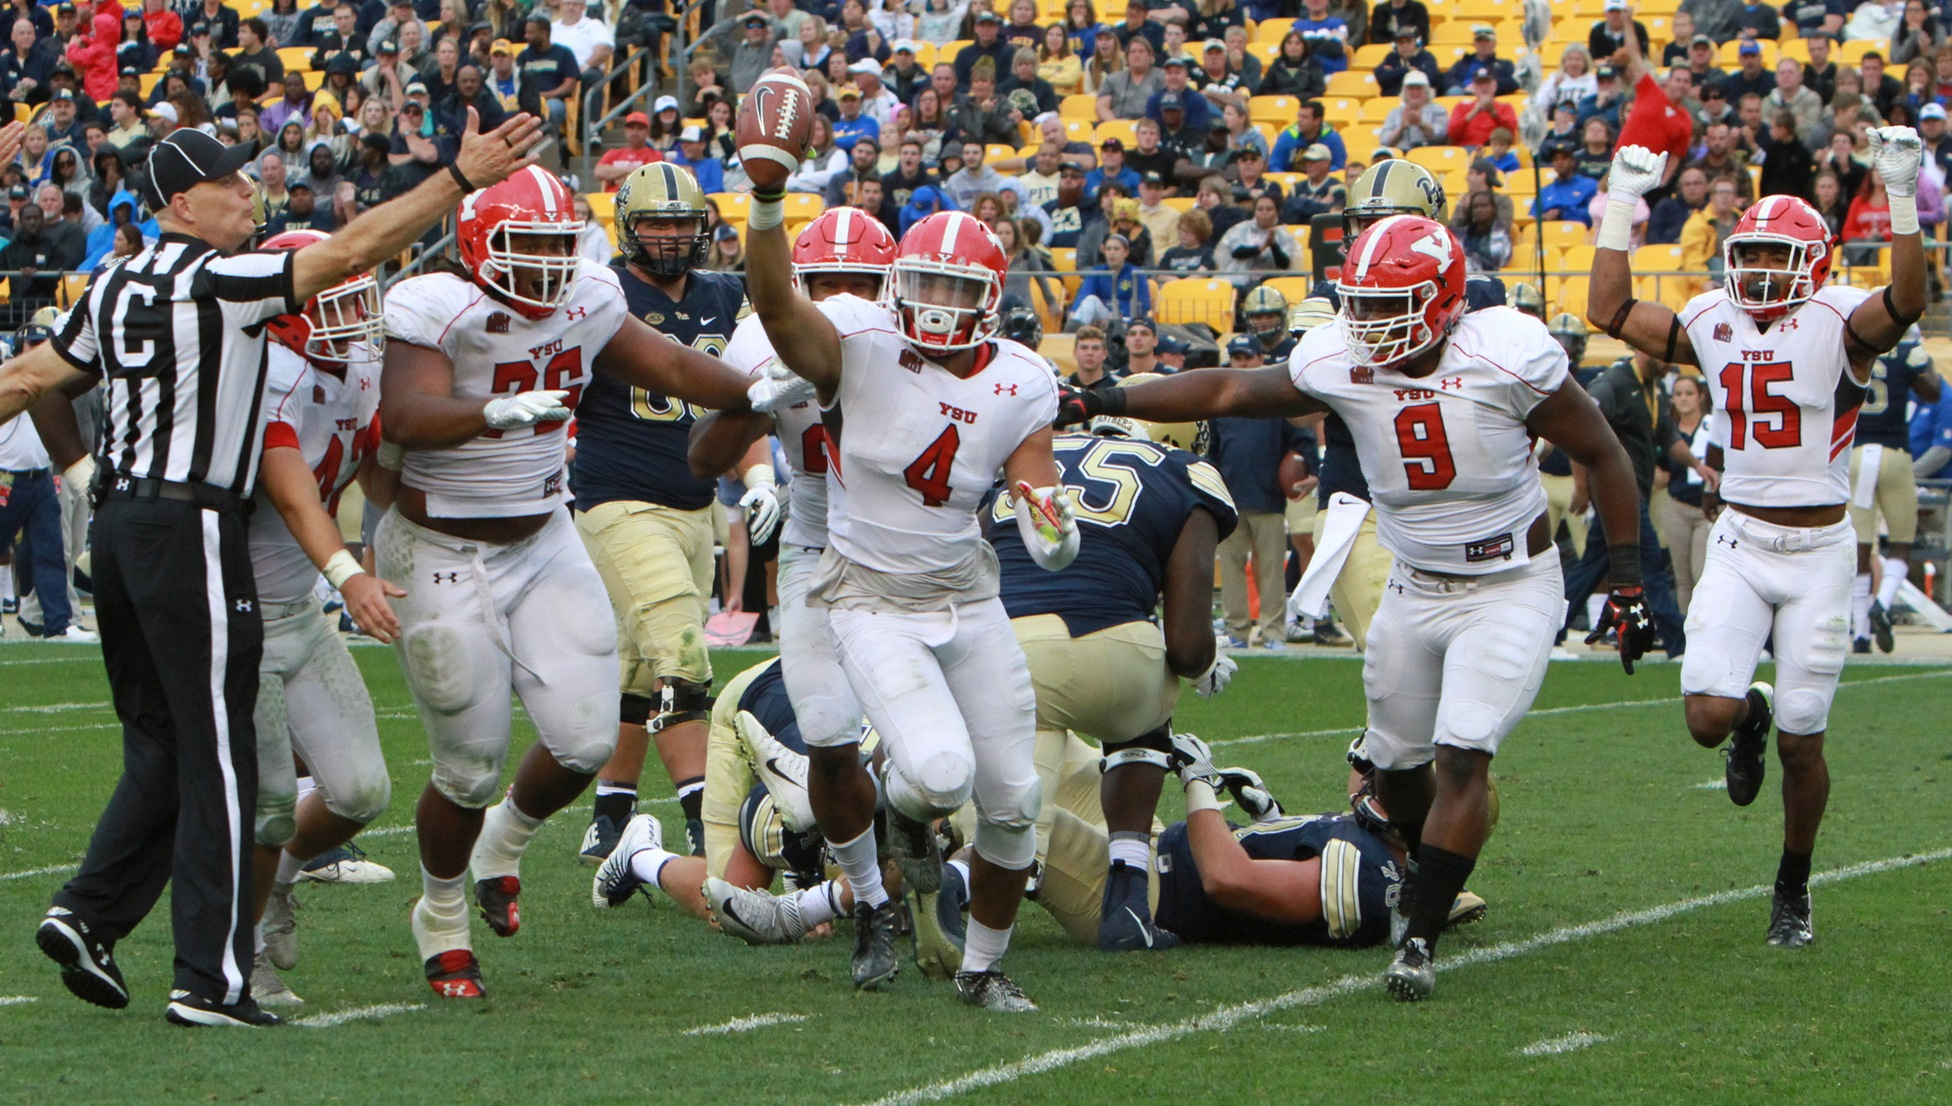 YSU forced overtime at Pitt before falling 28-21